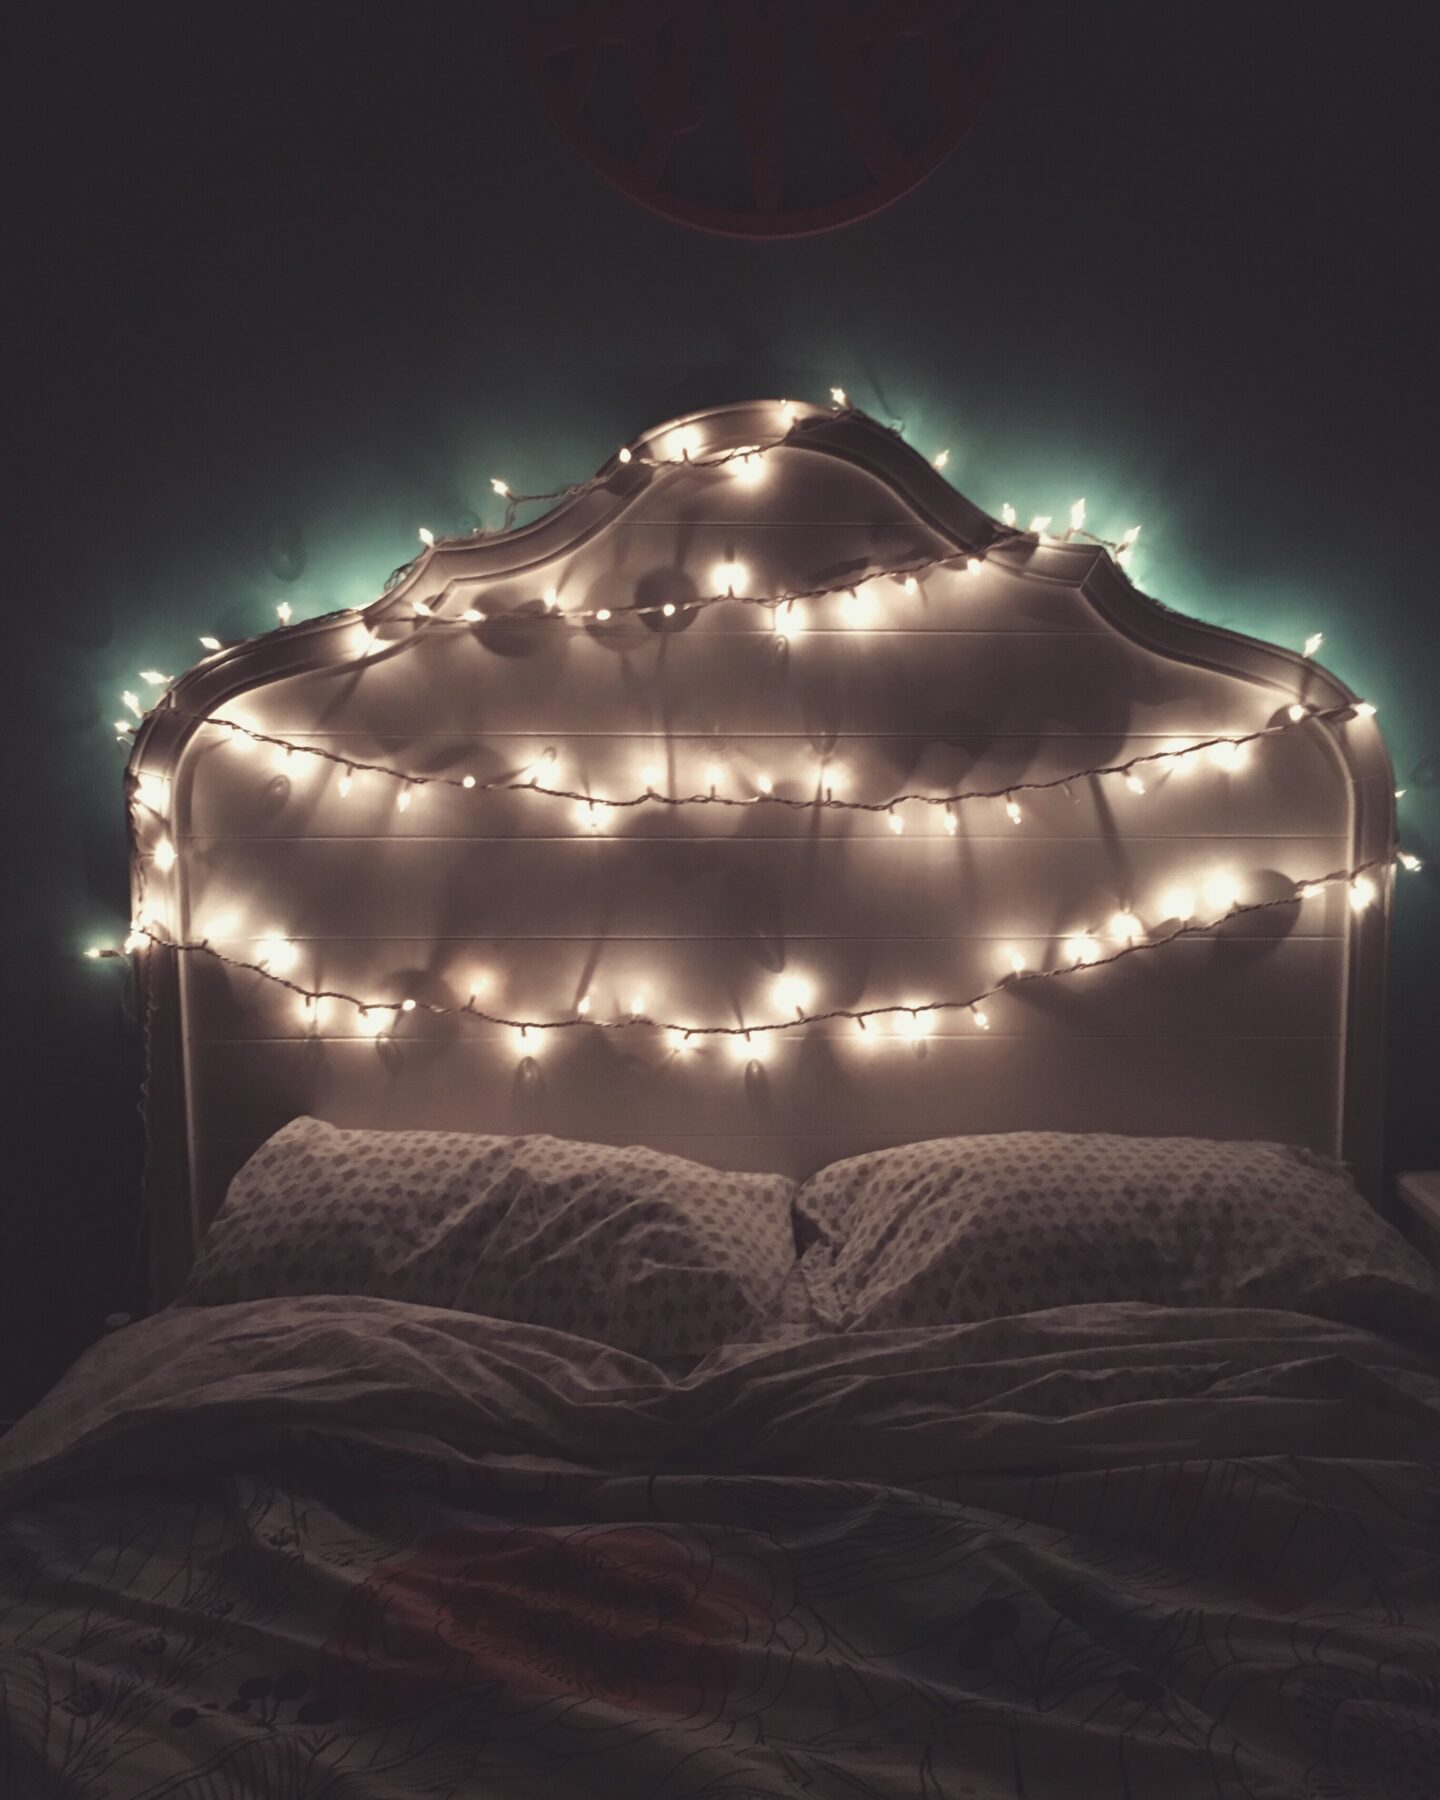 String lights for a cheap or free way to decorate your bedroom that makes your room go from bleh to amazing